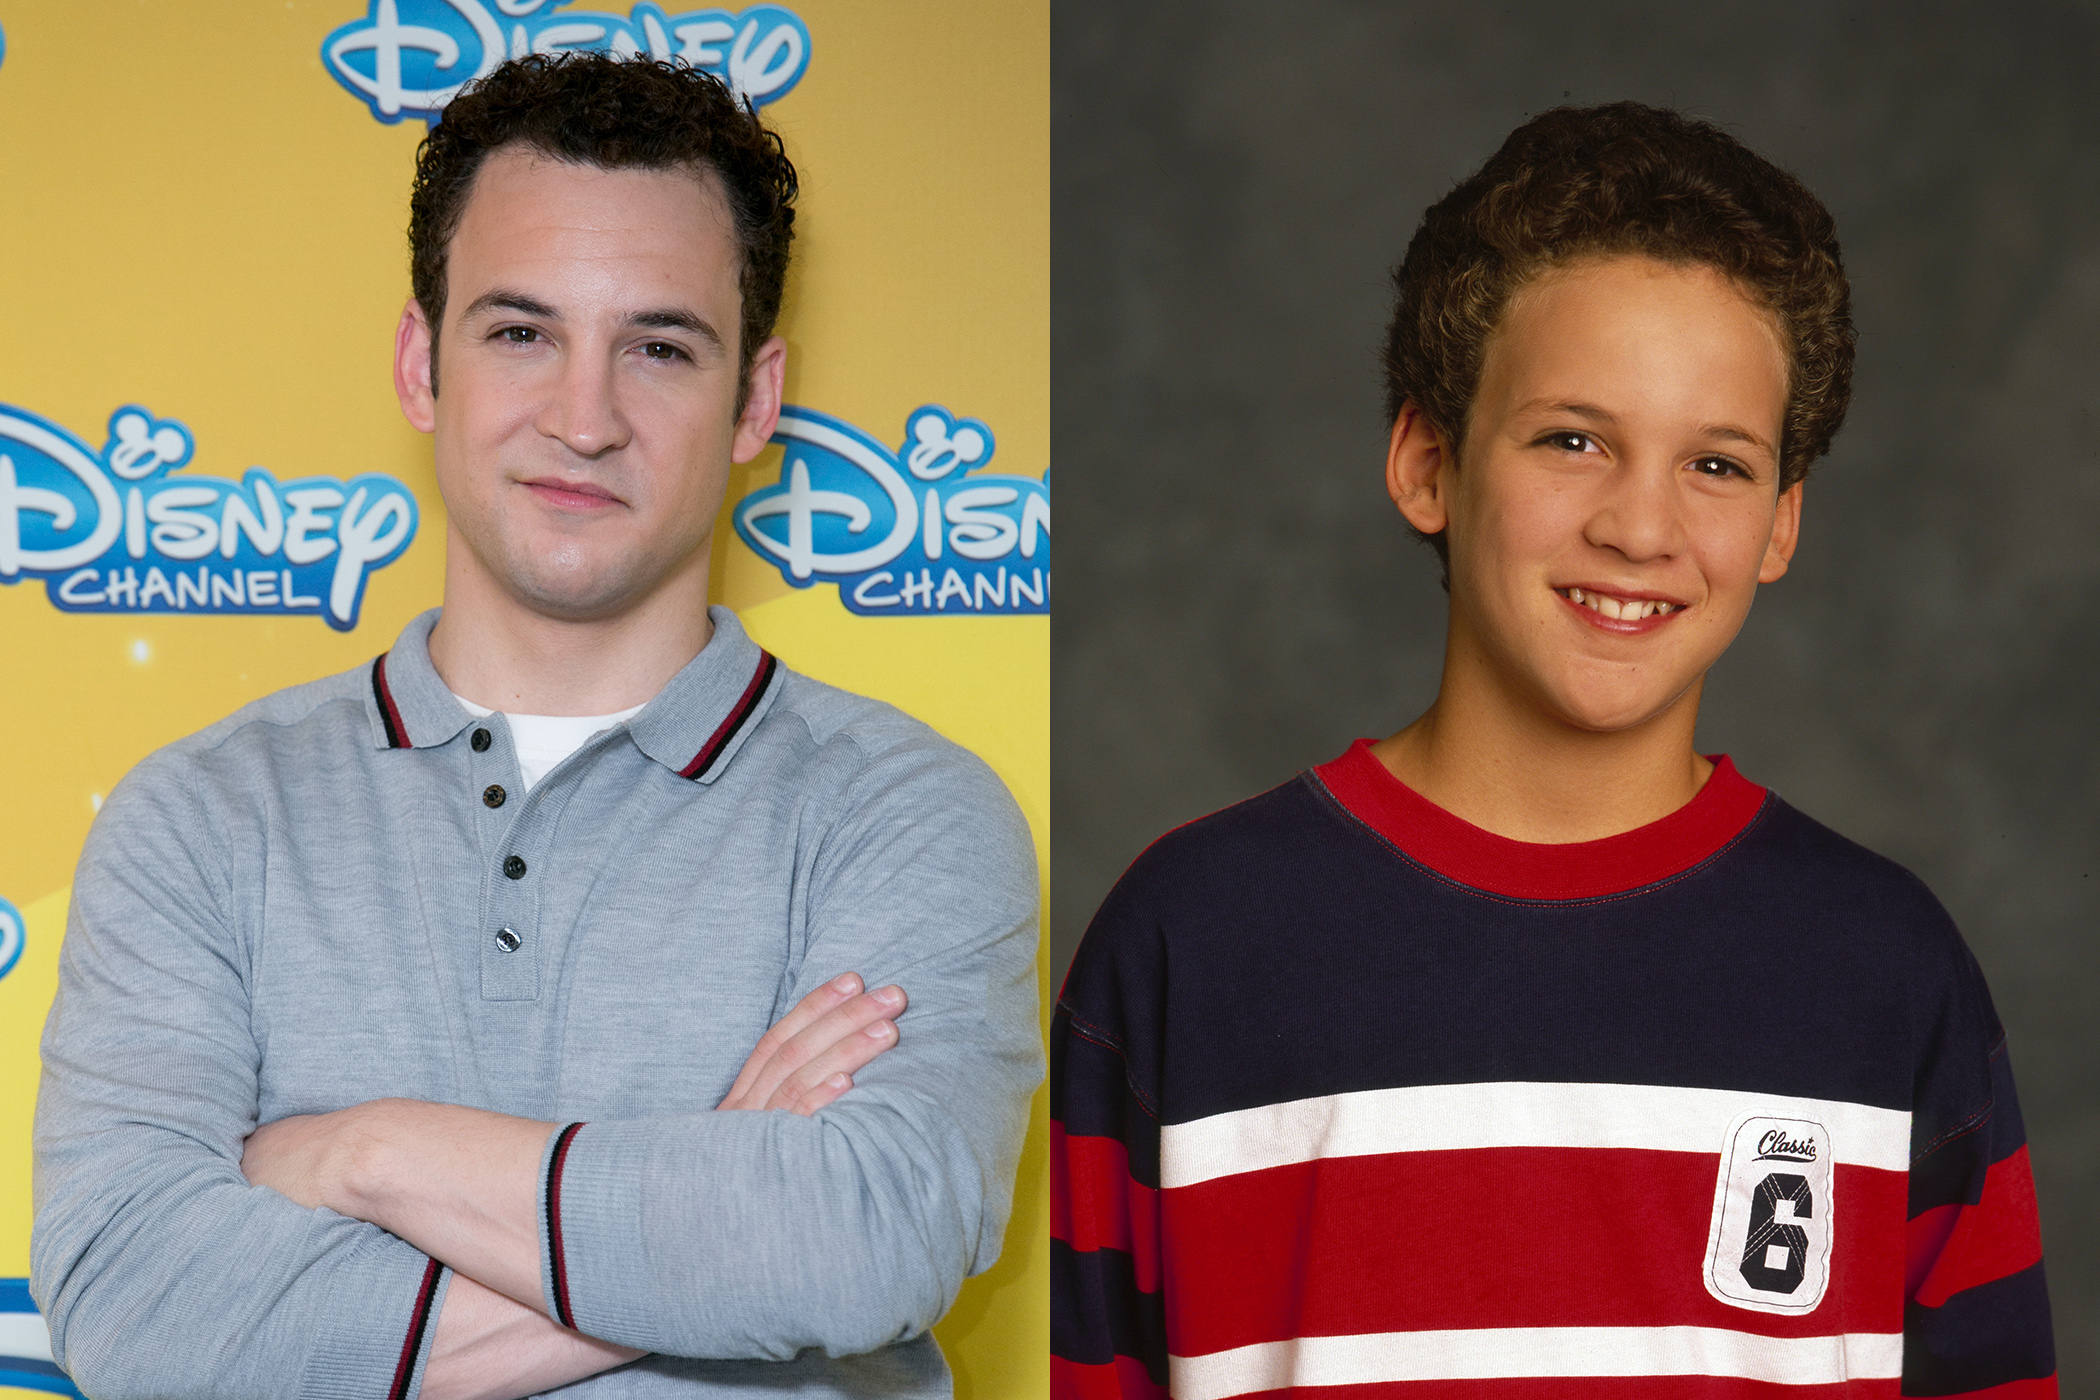 <strong>Ben Savage.</strong>                                   After graduating from Stanford and taking sporadic TV and film parts, the boy who once met the world returned to role of Cory Matthews in this year's Disney Channel spin-off Girl Meets World.